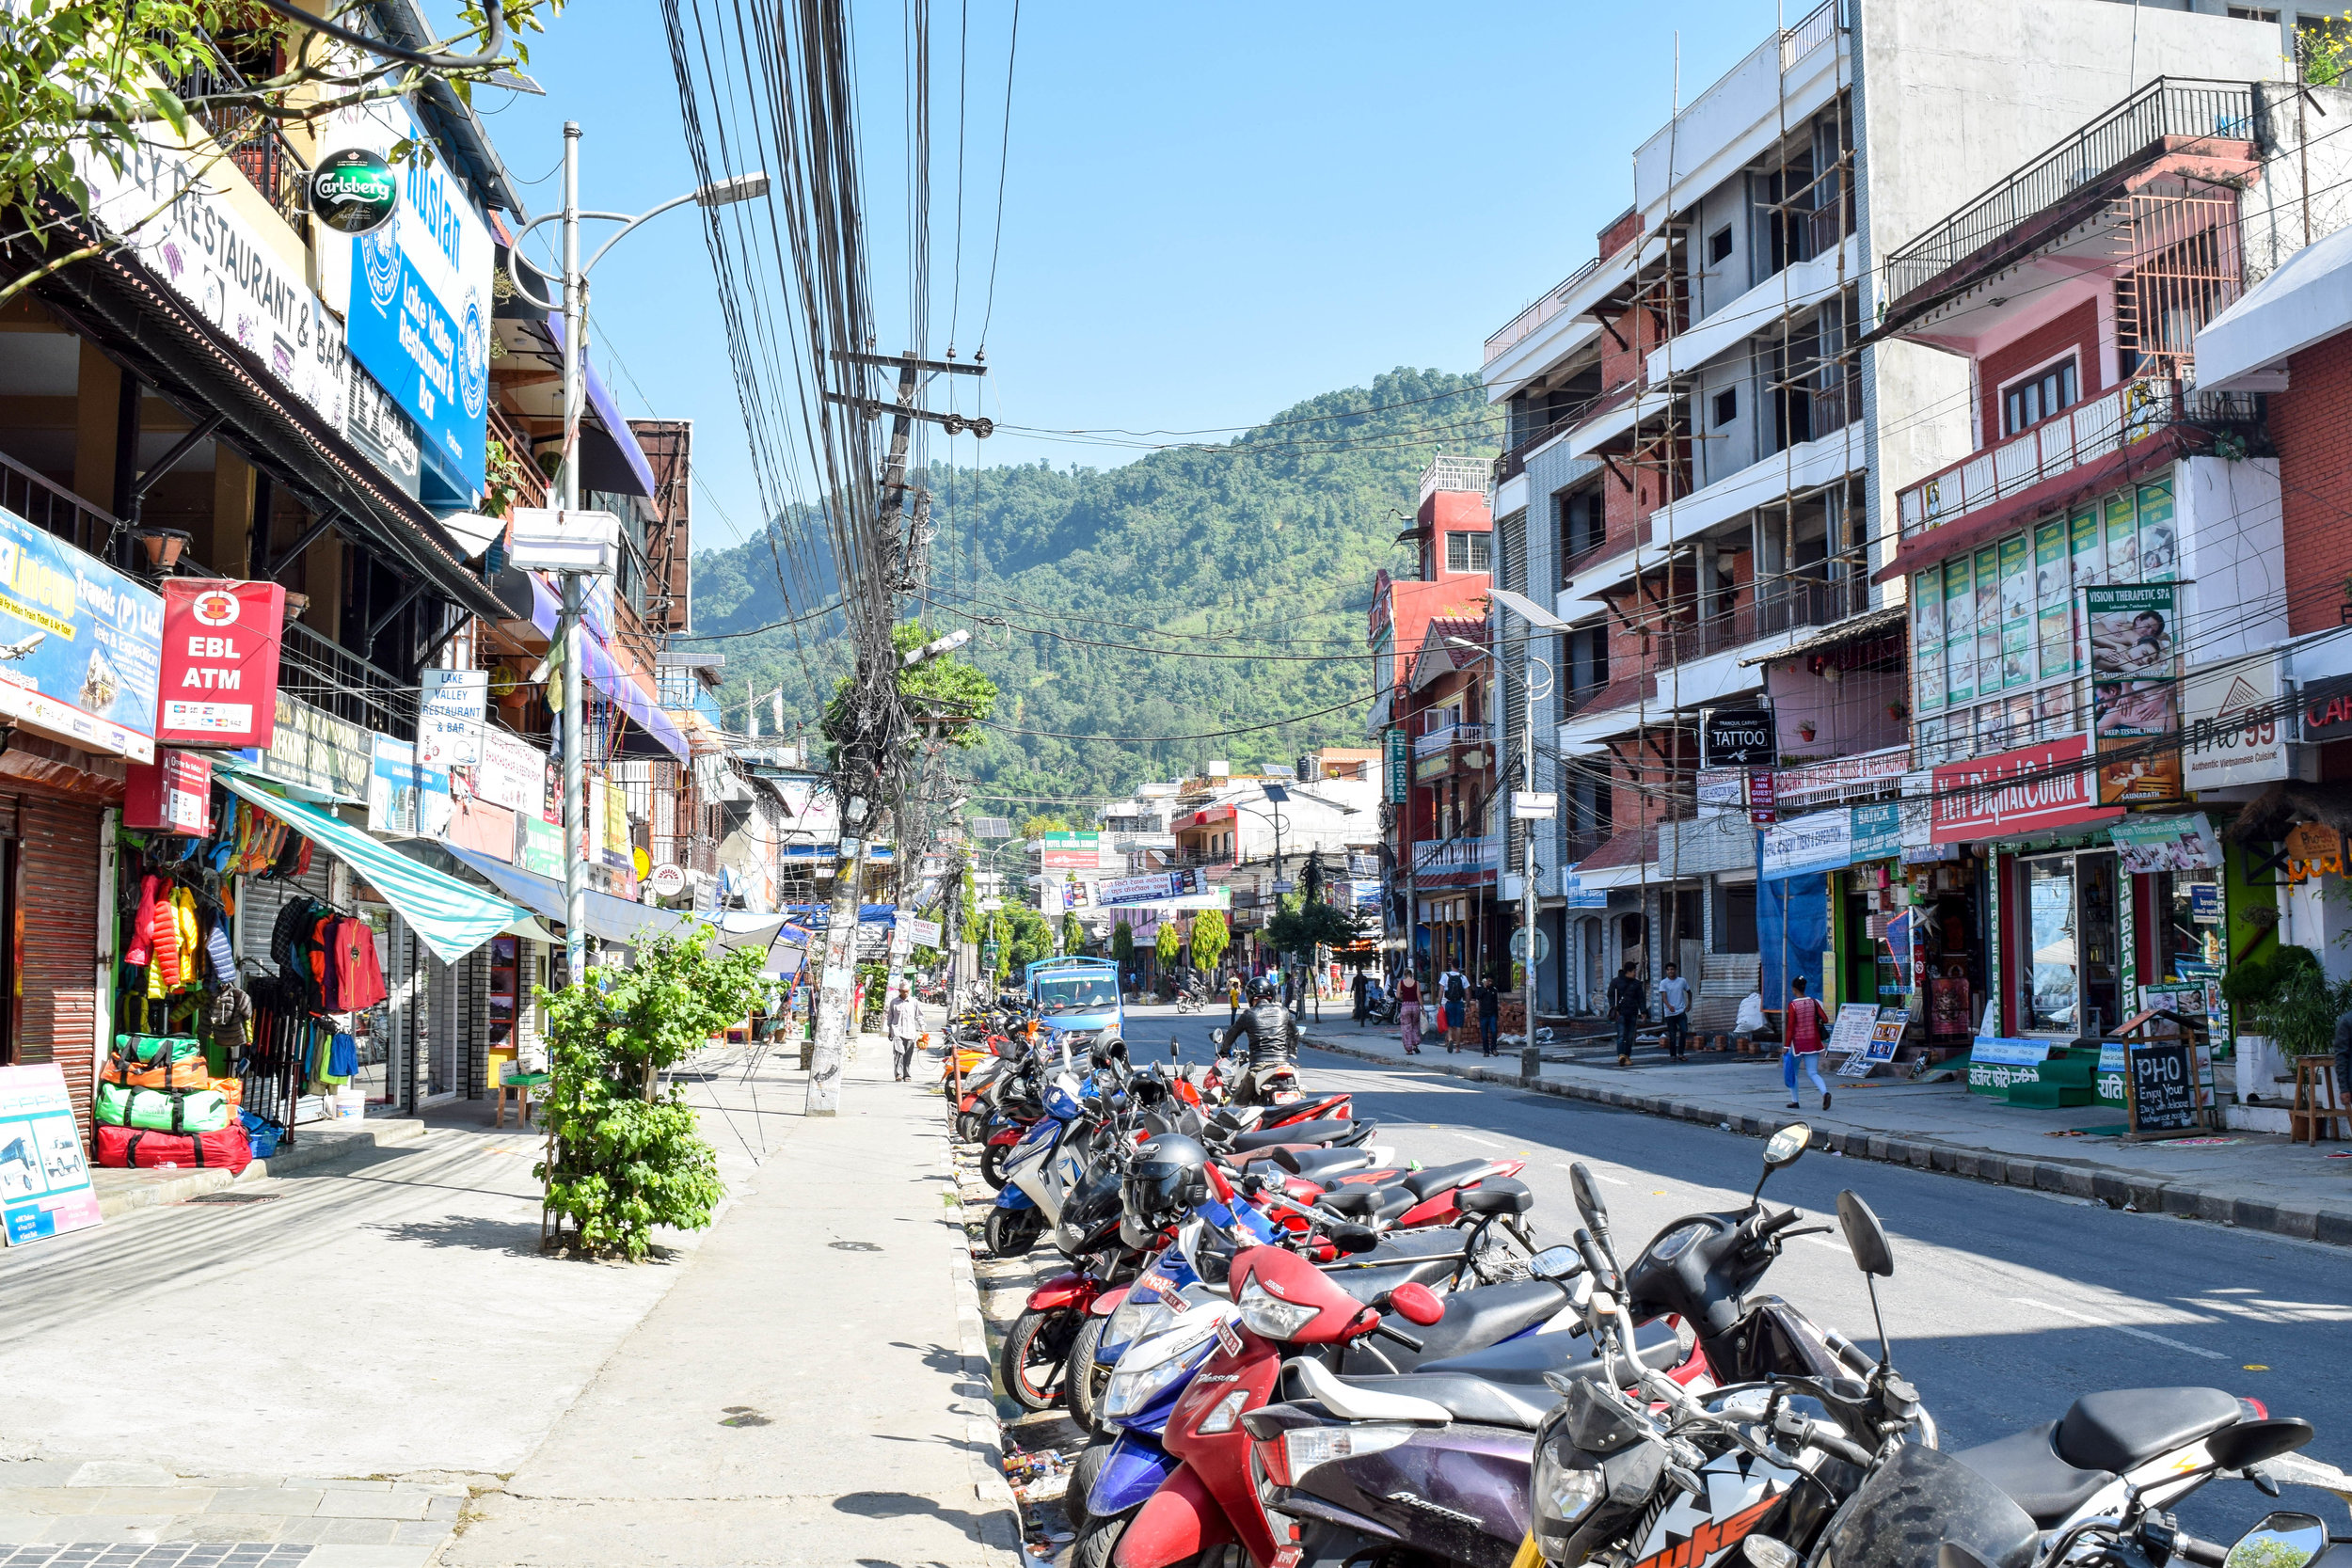 Pokhara: More calm than Kathmandu, but still Nepal, as evidenced by the *very* safe power lines.